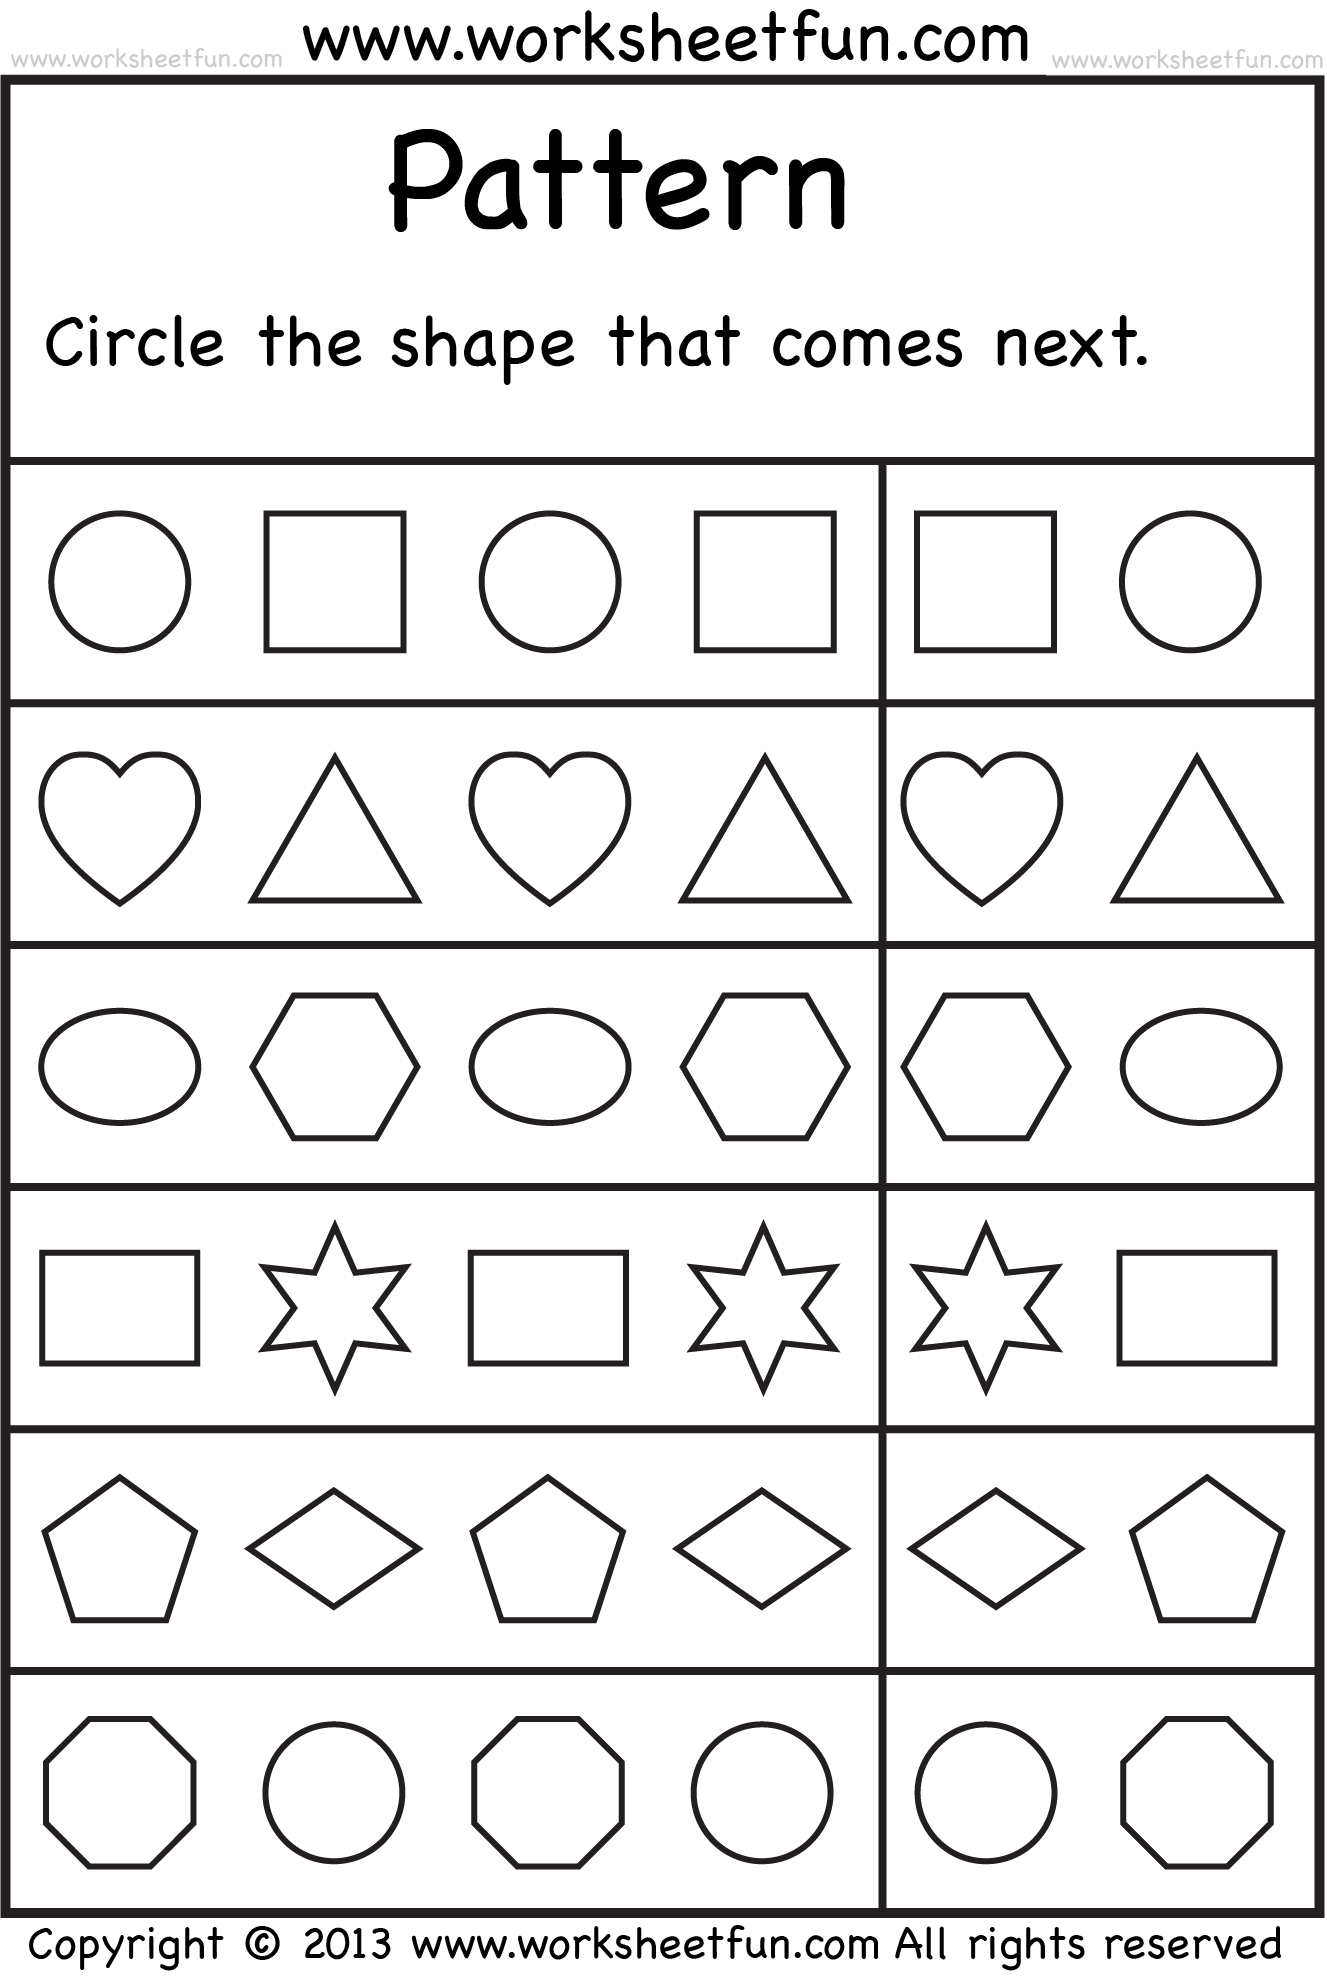 Worksheets Free Worksheets free printable worksheets worksheetfun printable